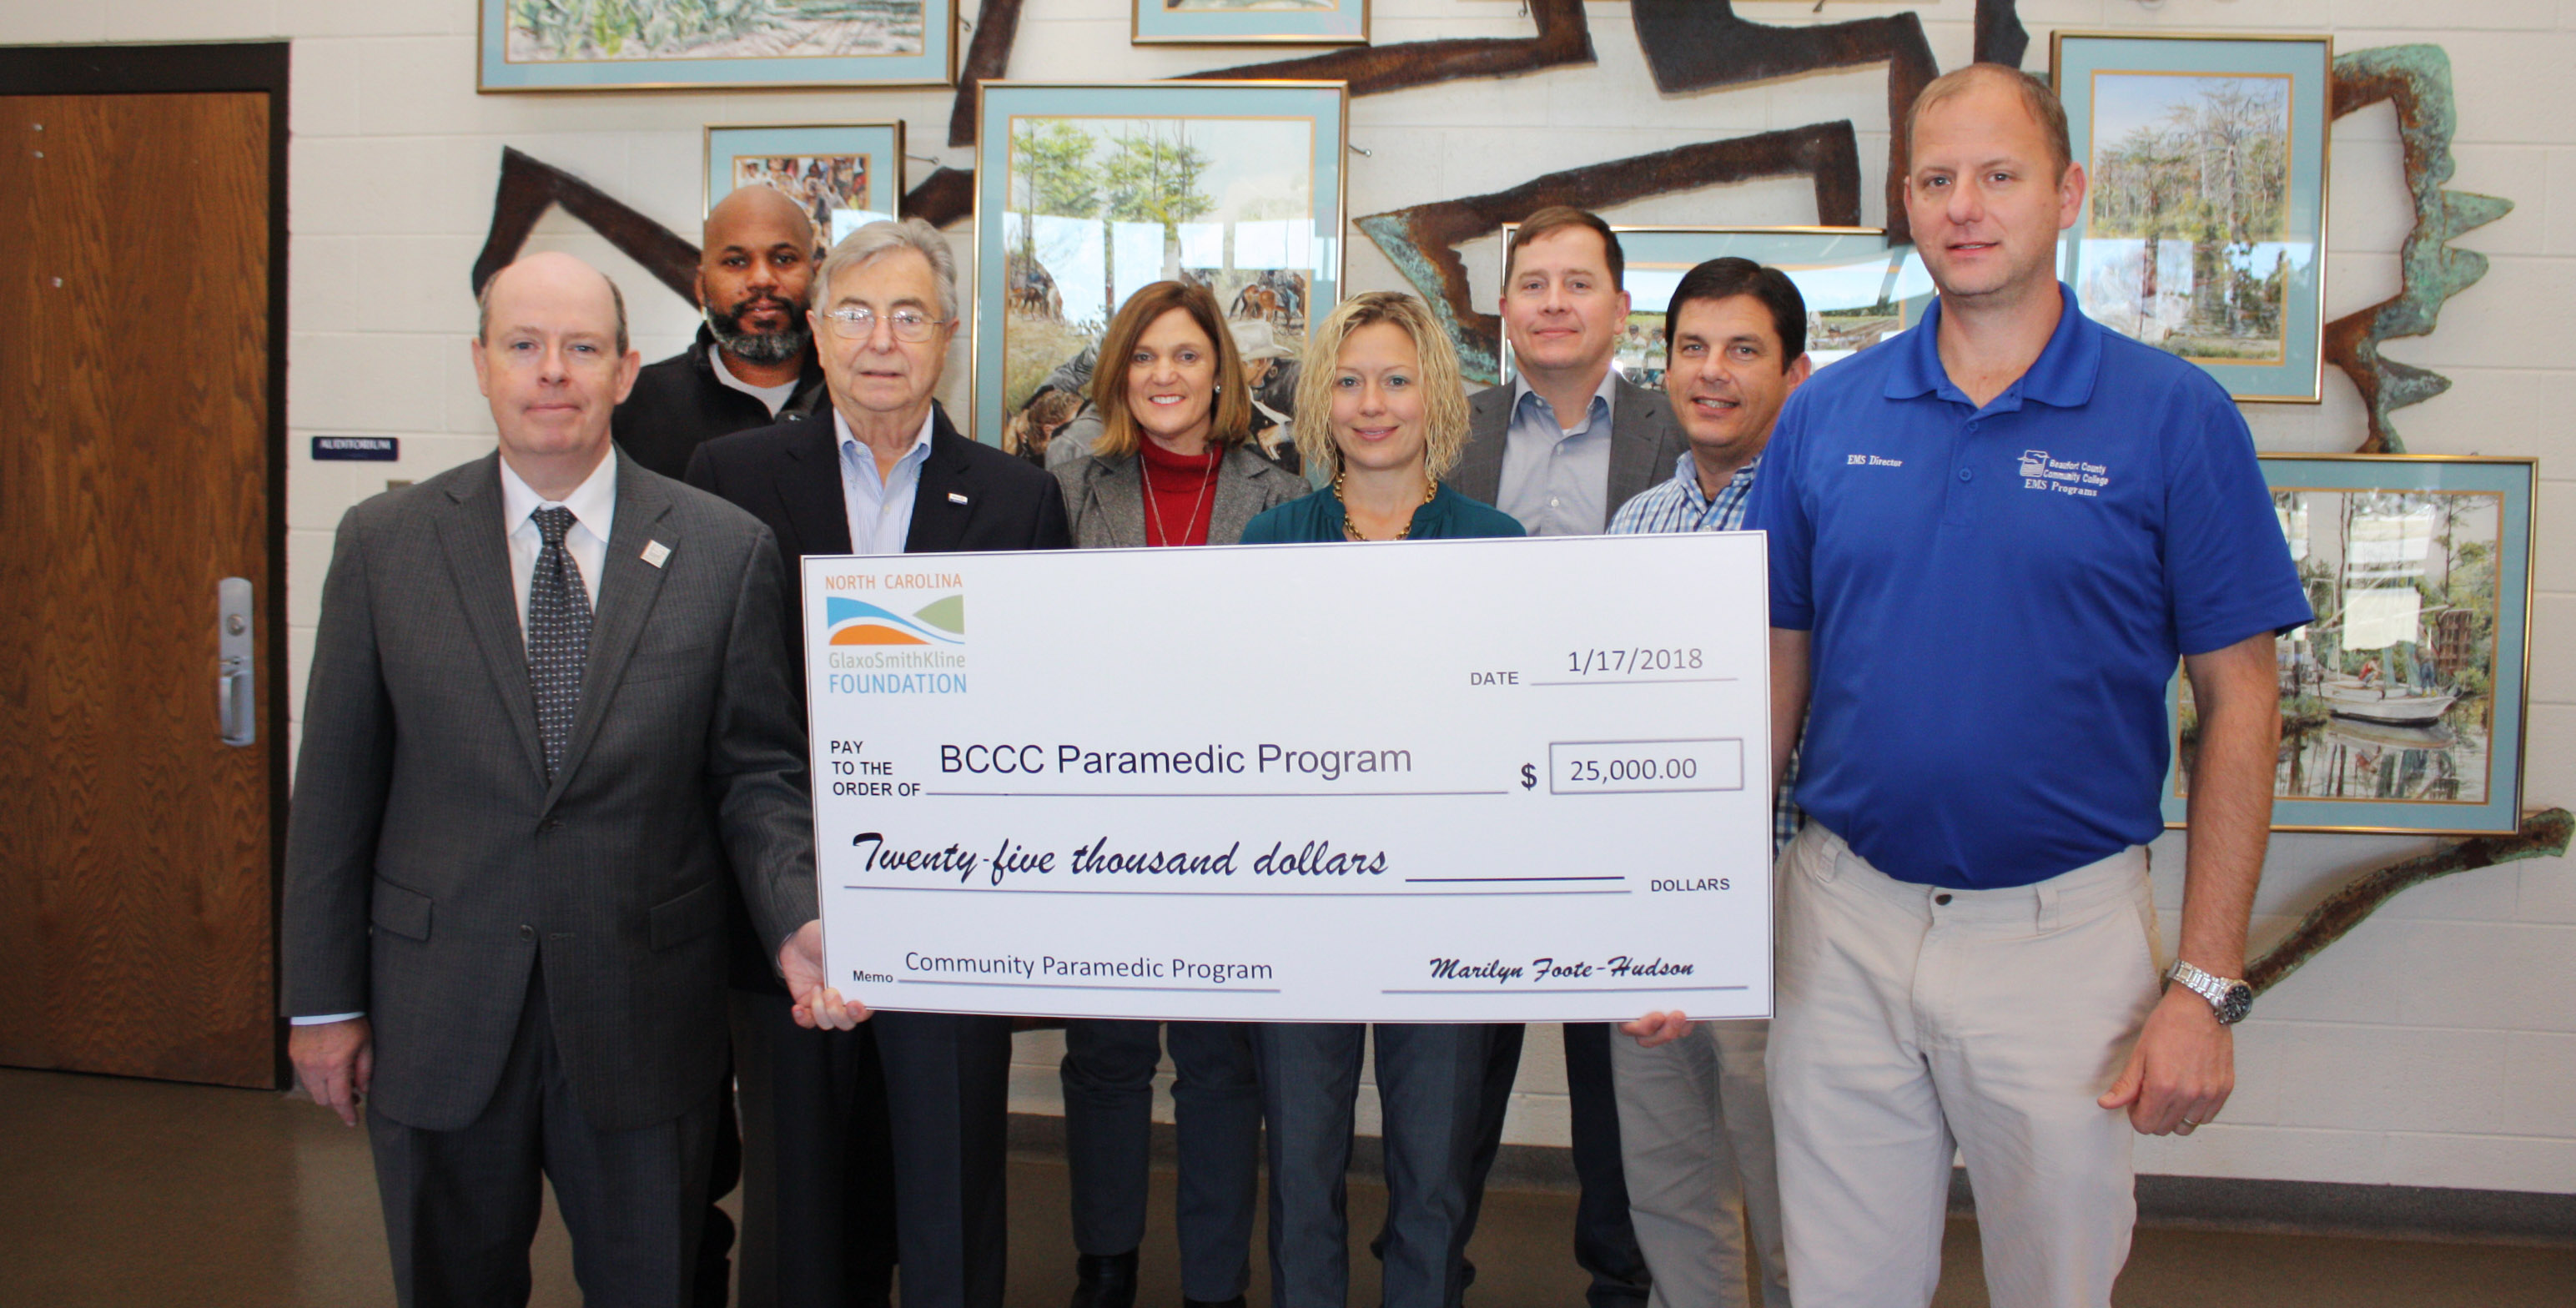 Seven people hold a large check.